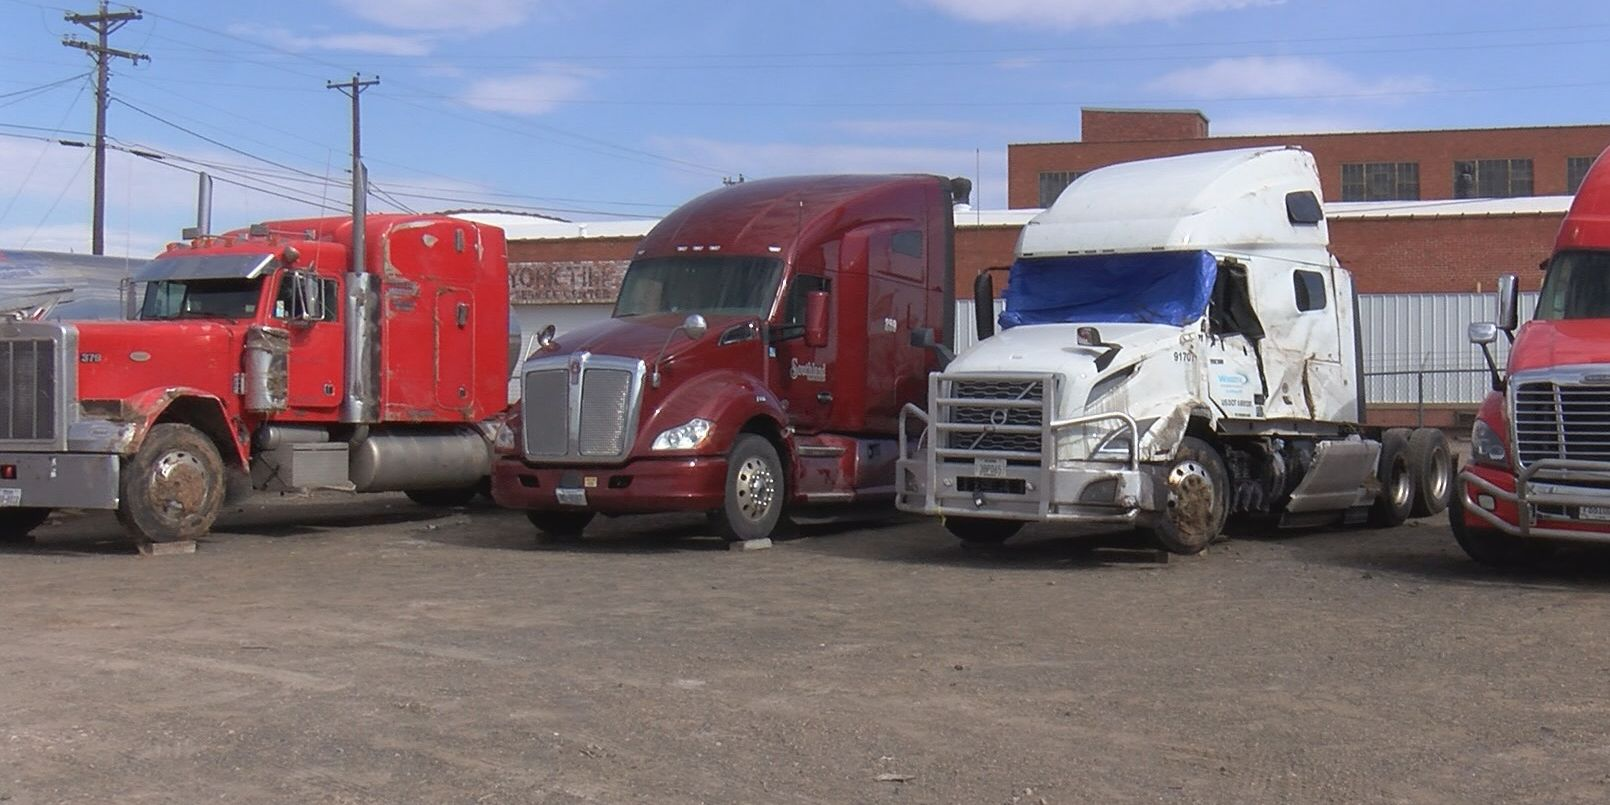 Overturned semi-trucks taken into towing lots and repair shops after wind storm